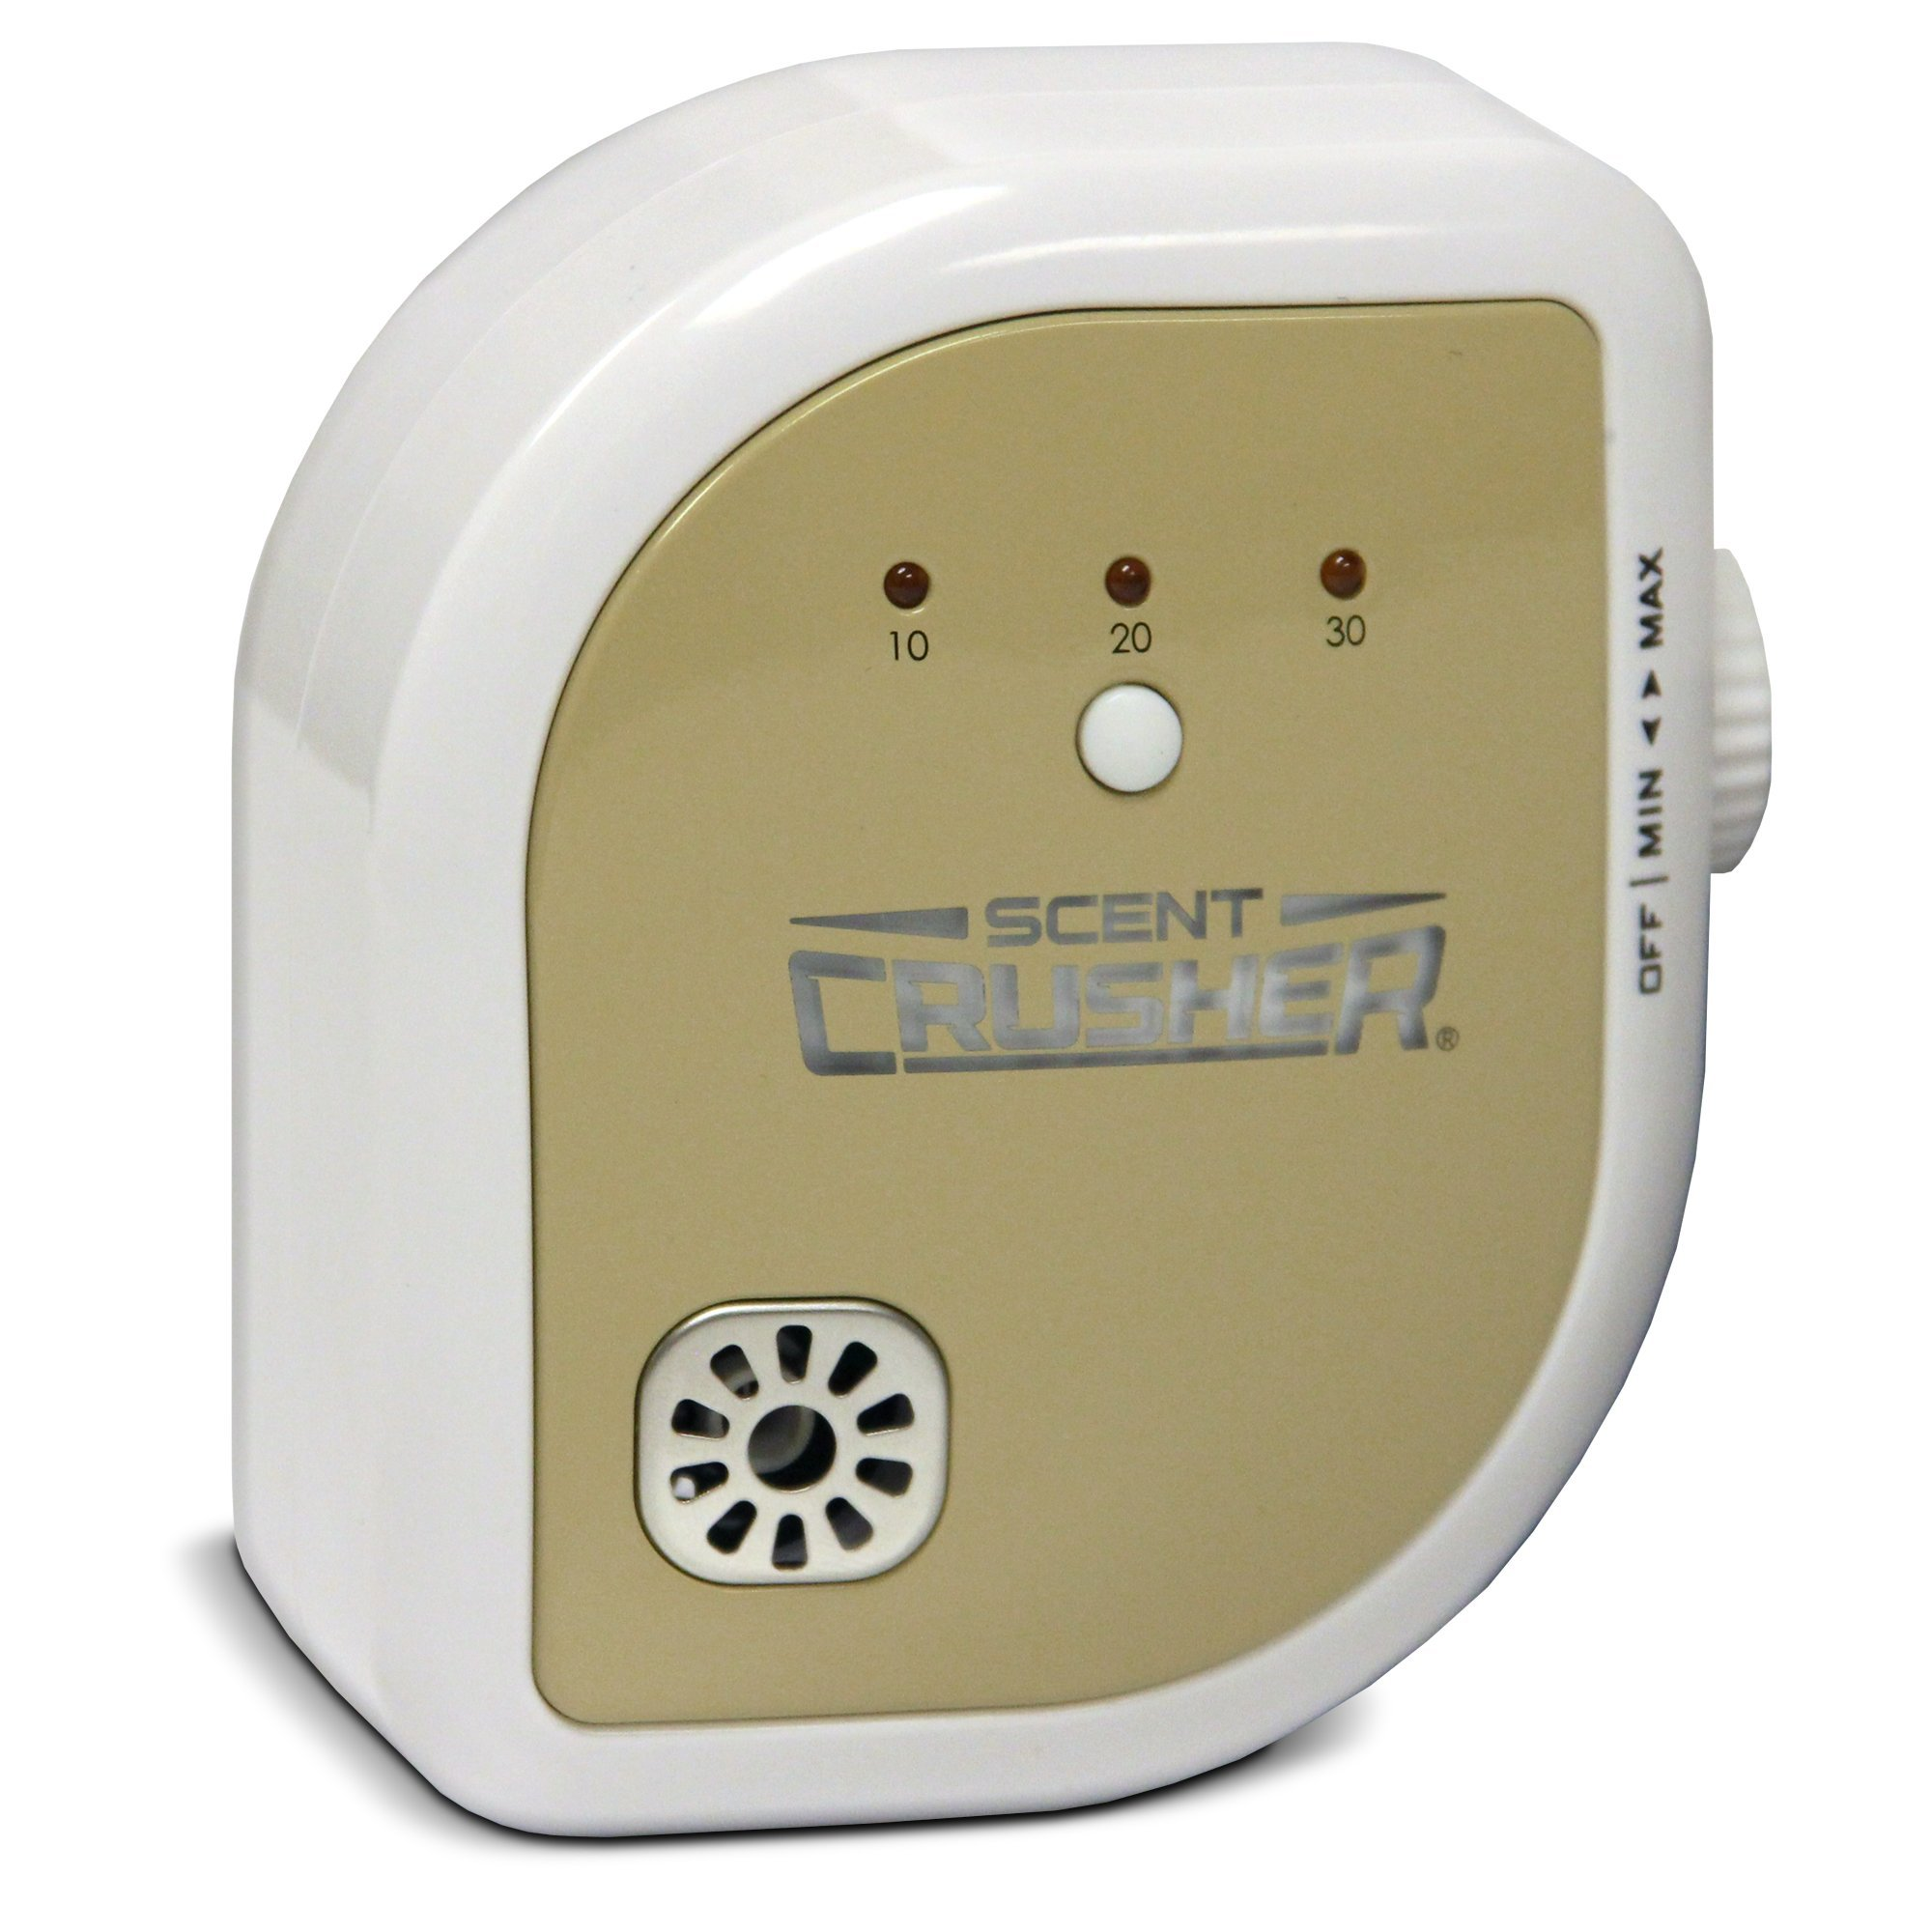 Scent Crusher Room Clean Plug-In Unit, Eliminates Odor, Kills Bacteria, for Home, Cabin, RV in 30 Minutes by Scent Crusher